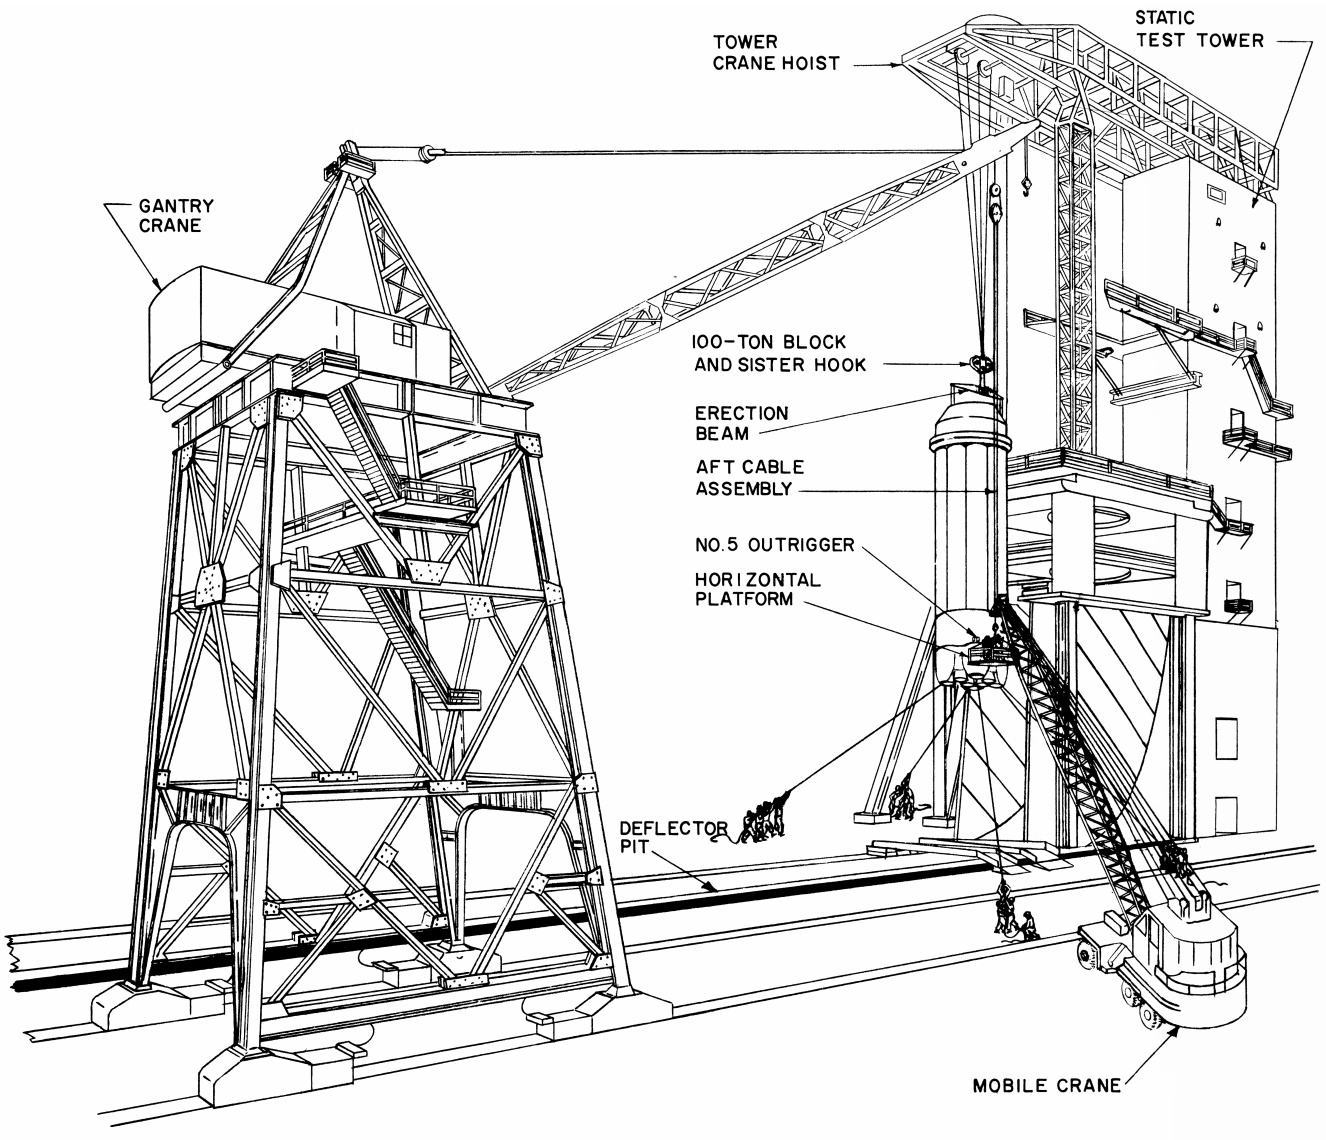 MSFC Static Test Stand Gantry Crane